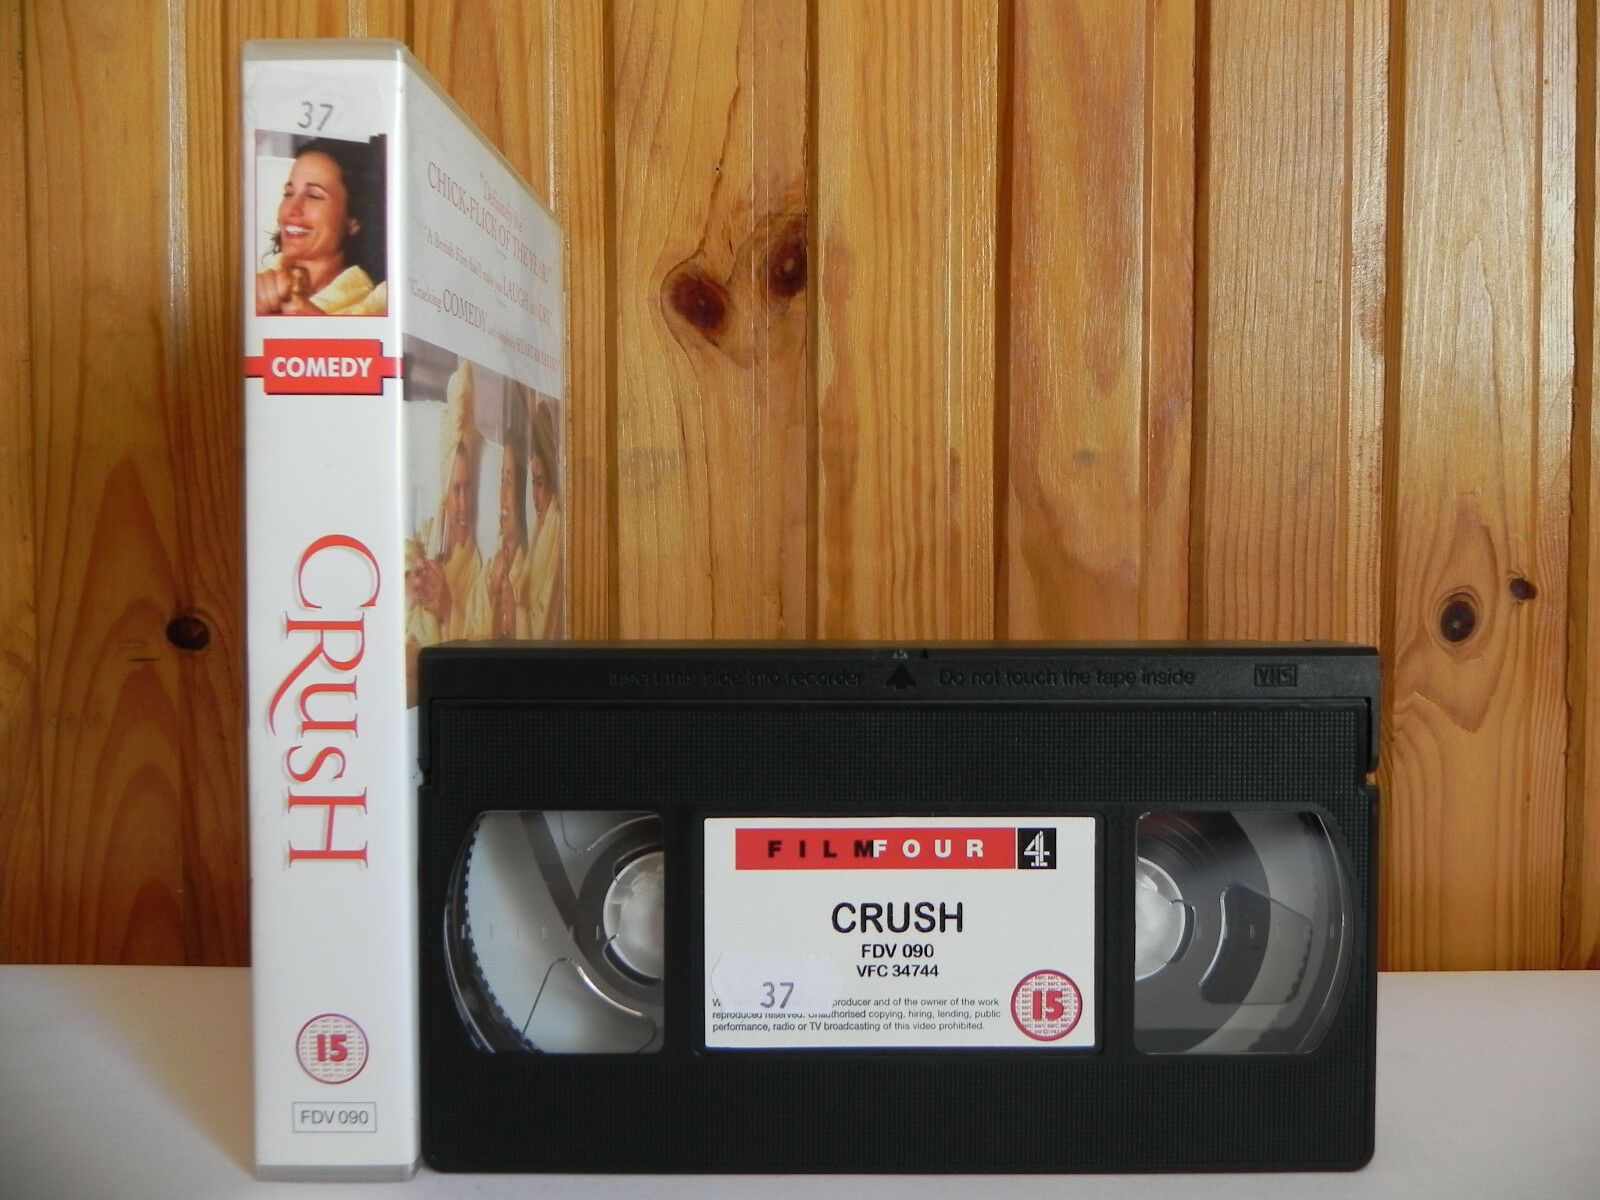 Crush - Film Four - Comedy - Andie Macdowell - Imelda Stauton - Large Box - VHS